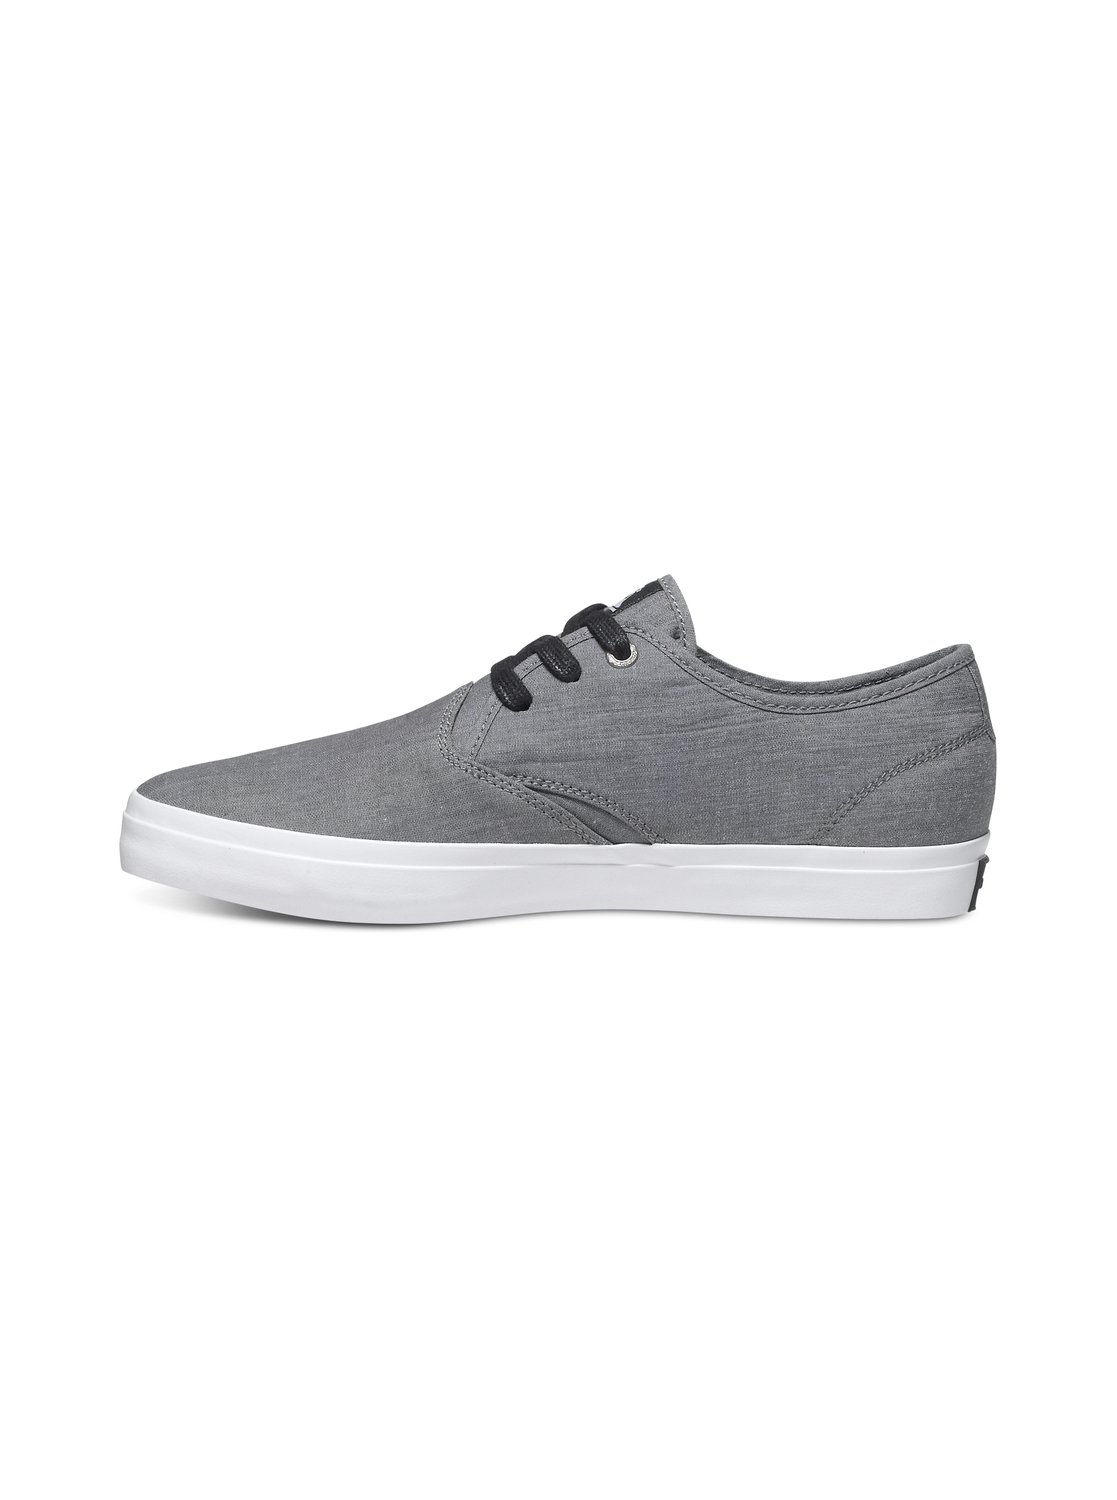 Shorebreak Chaussures Aqys300018 Aqys300018 Chaussures Shorebreak Quiksilver wzC7EYx4Yq